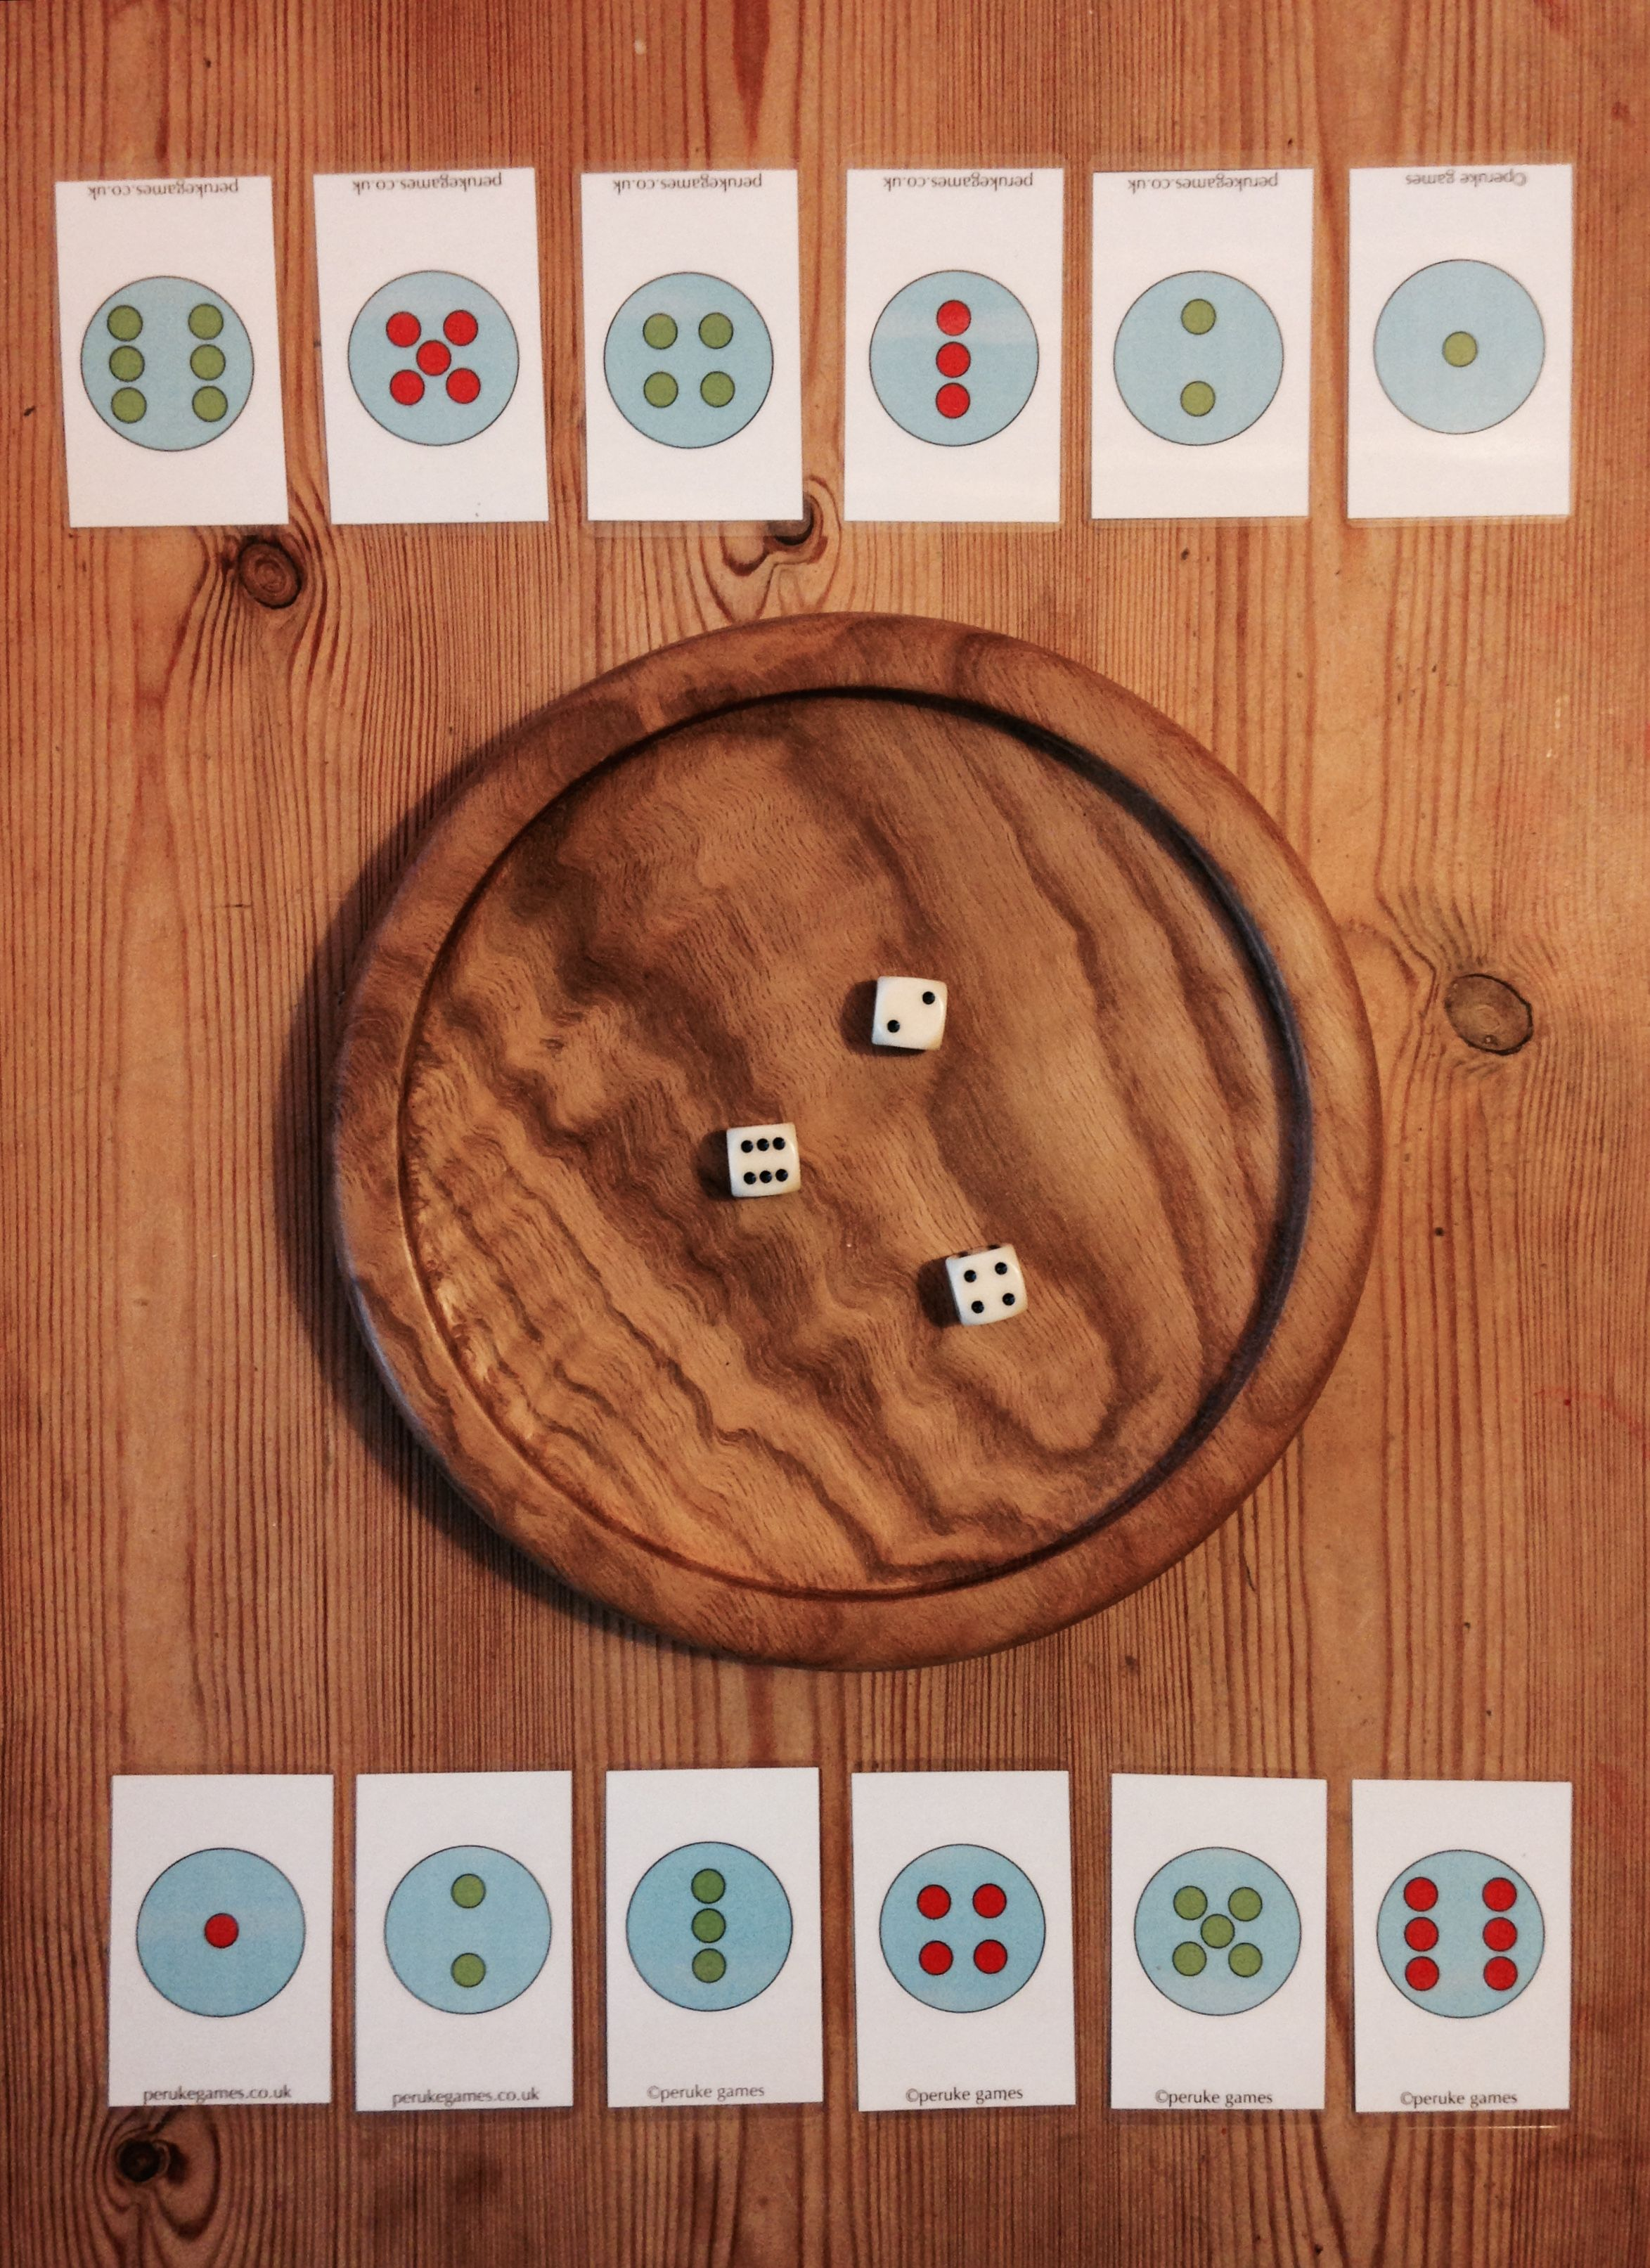 Early prototype of Peruke Family games, Dice games, Games